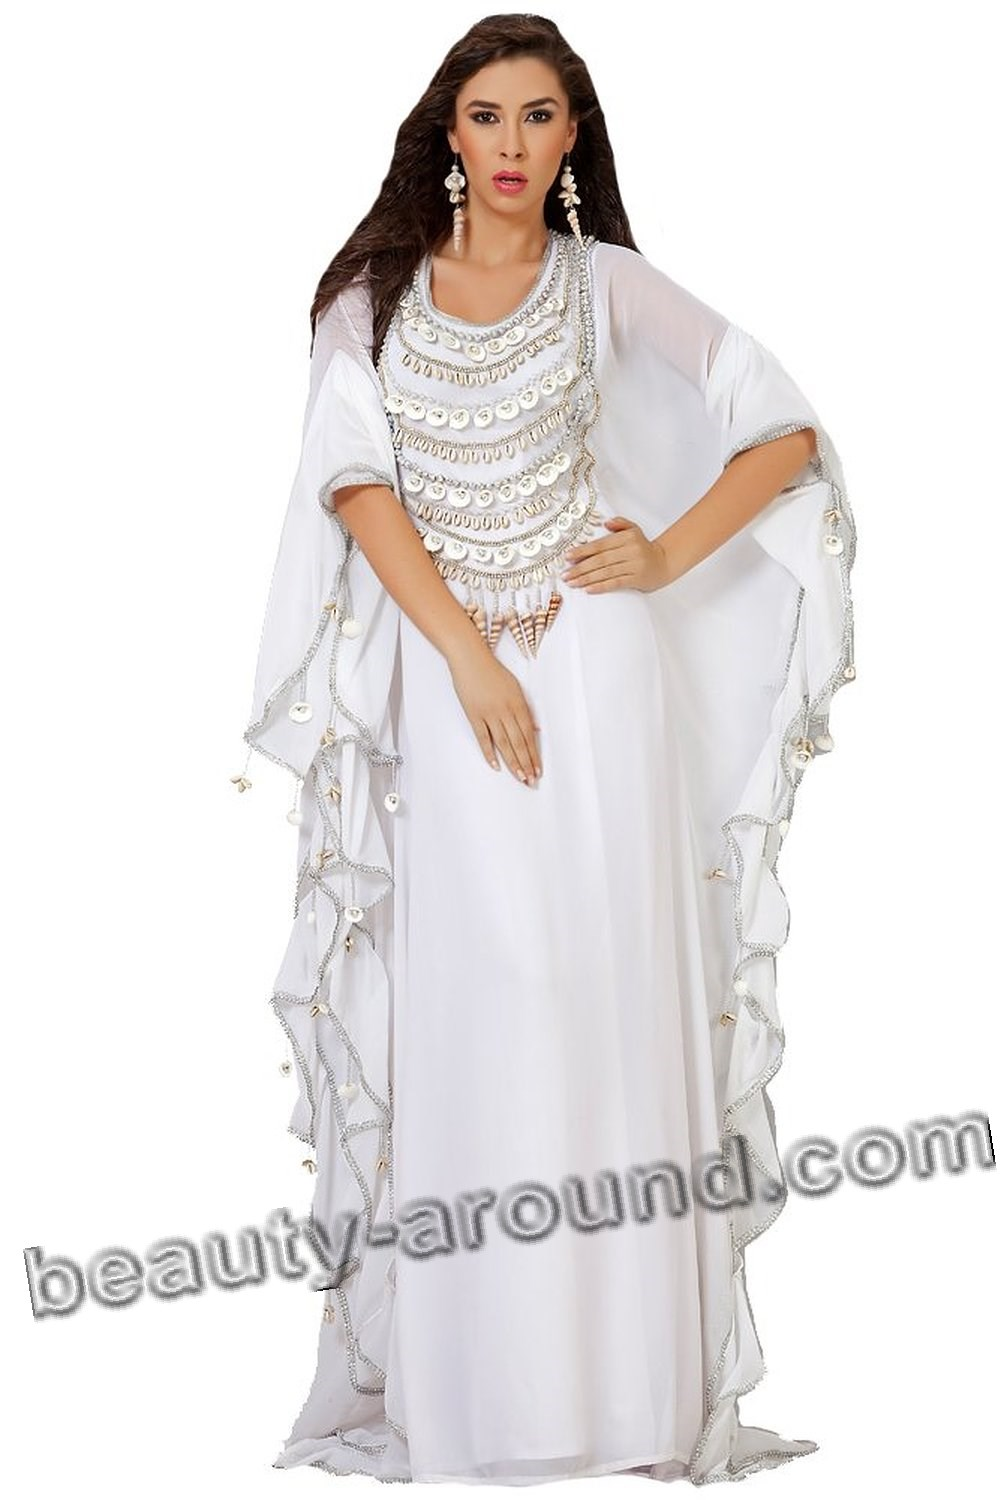 White wedding abaya photo